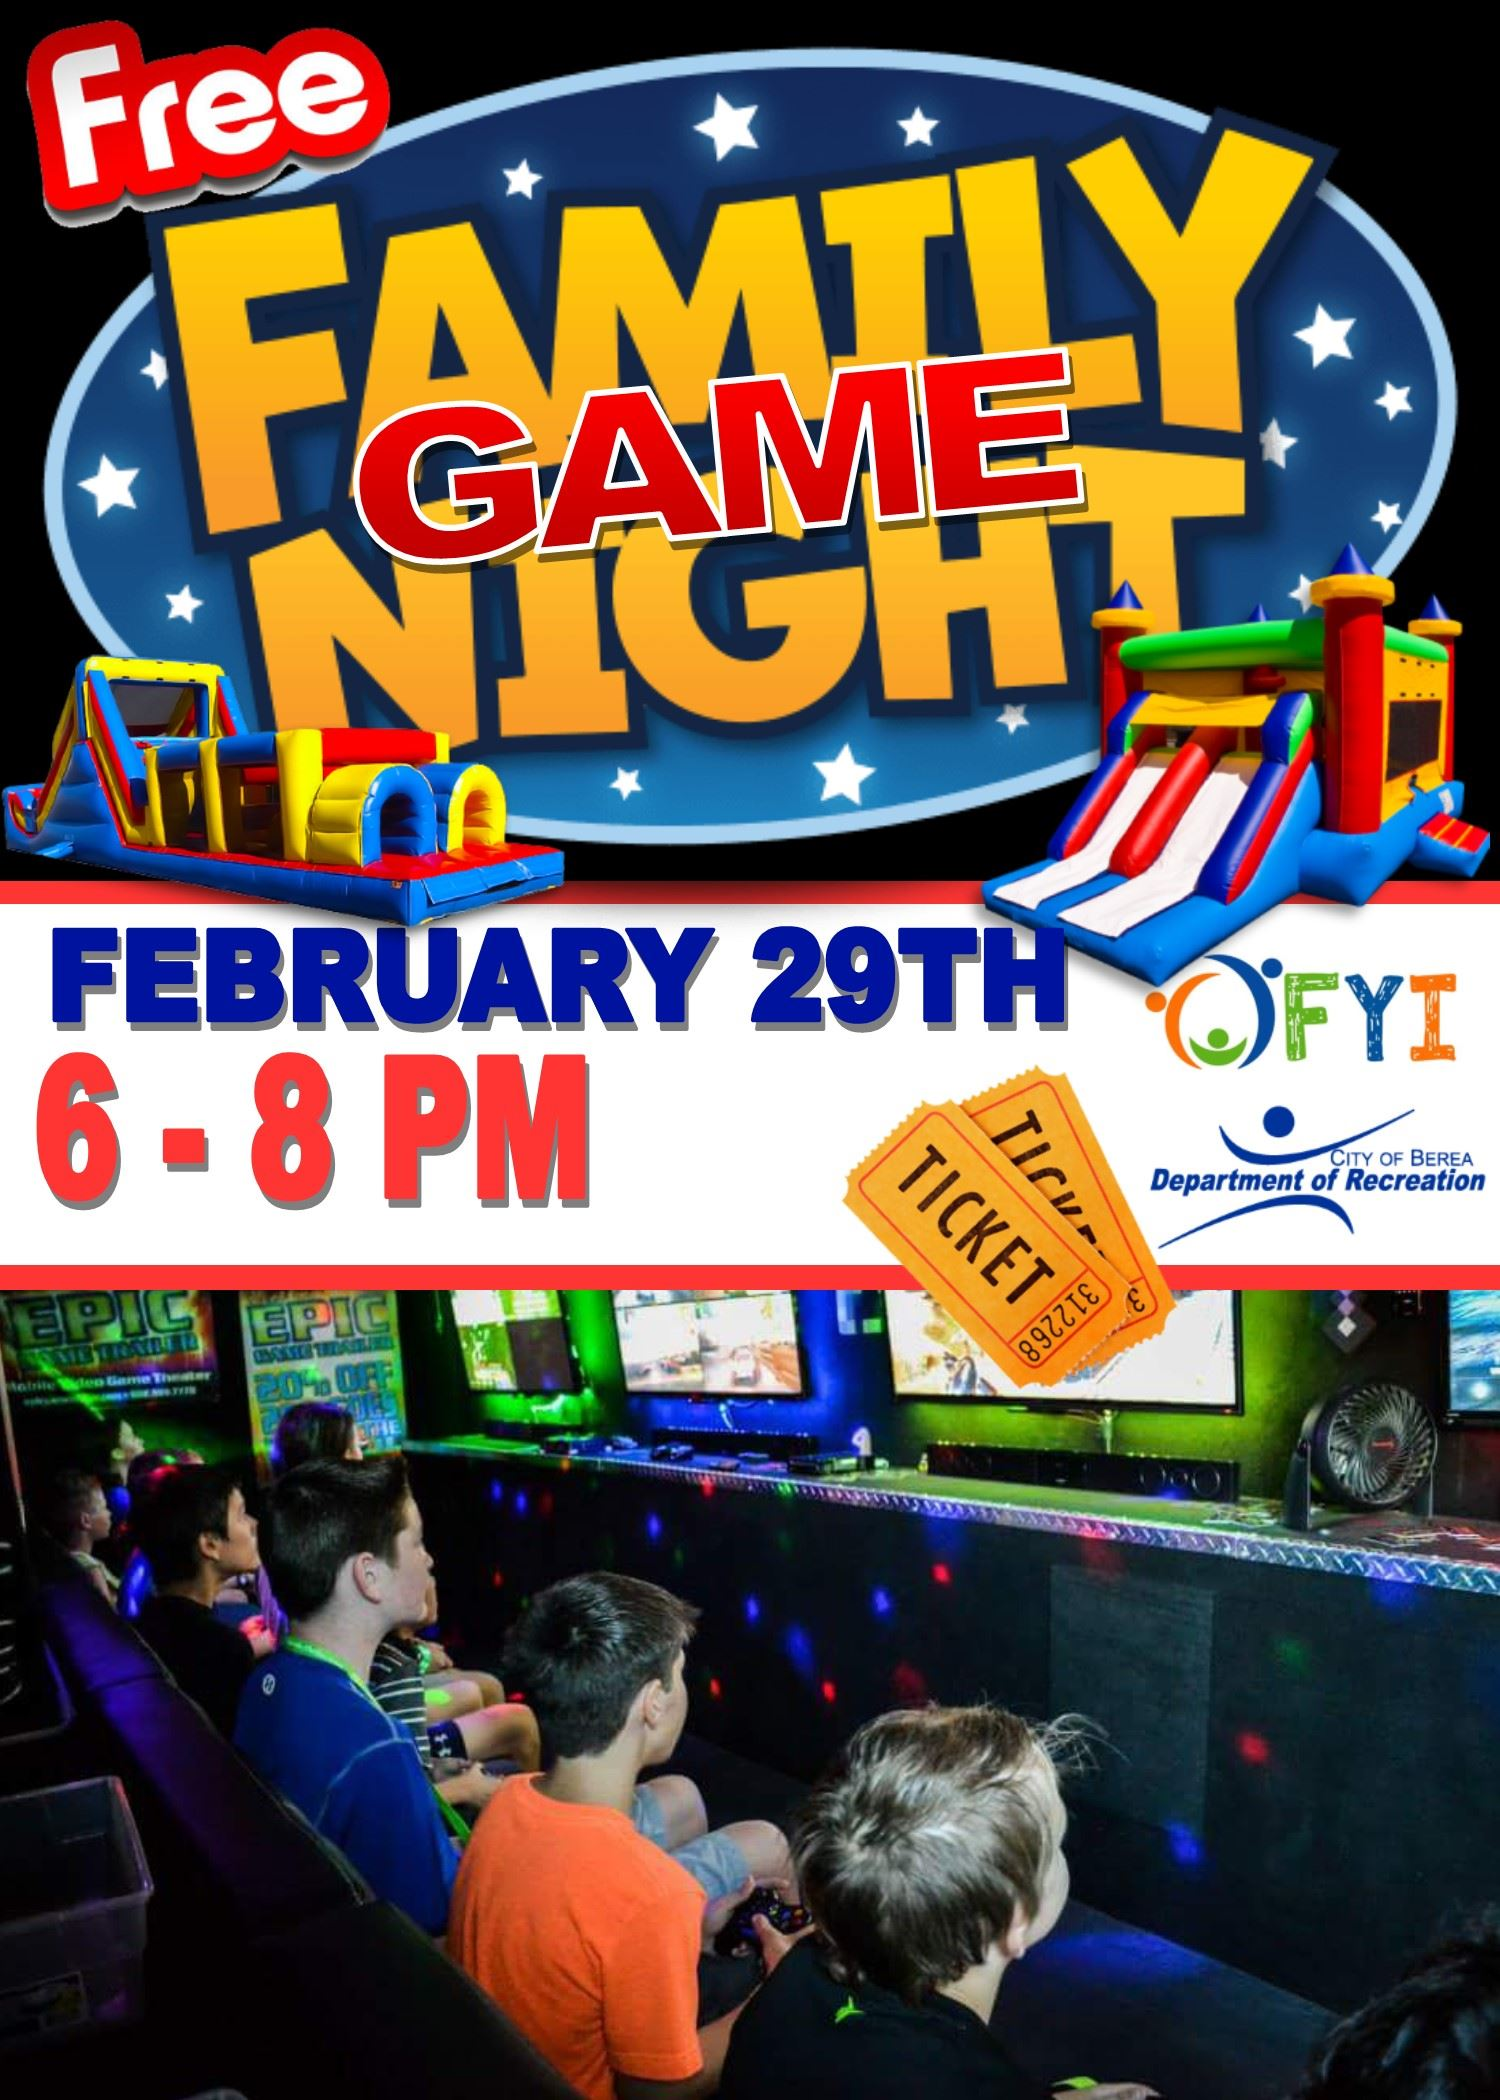 Flyer about game night which includes photos of bouncy houses, text and children playing video games